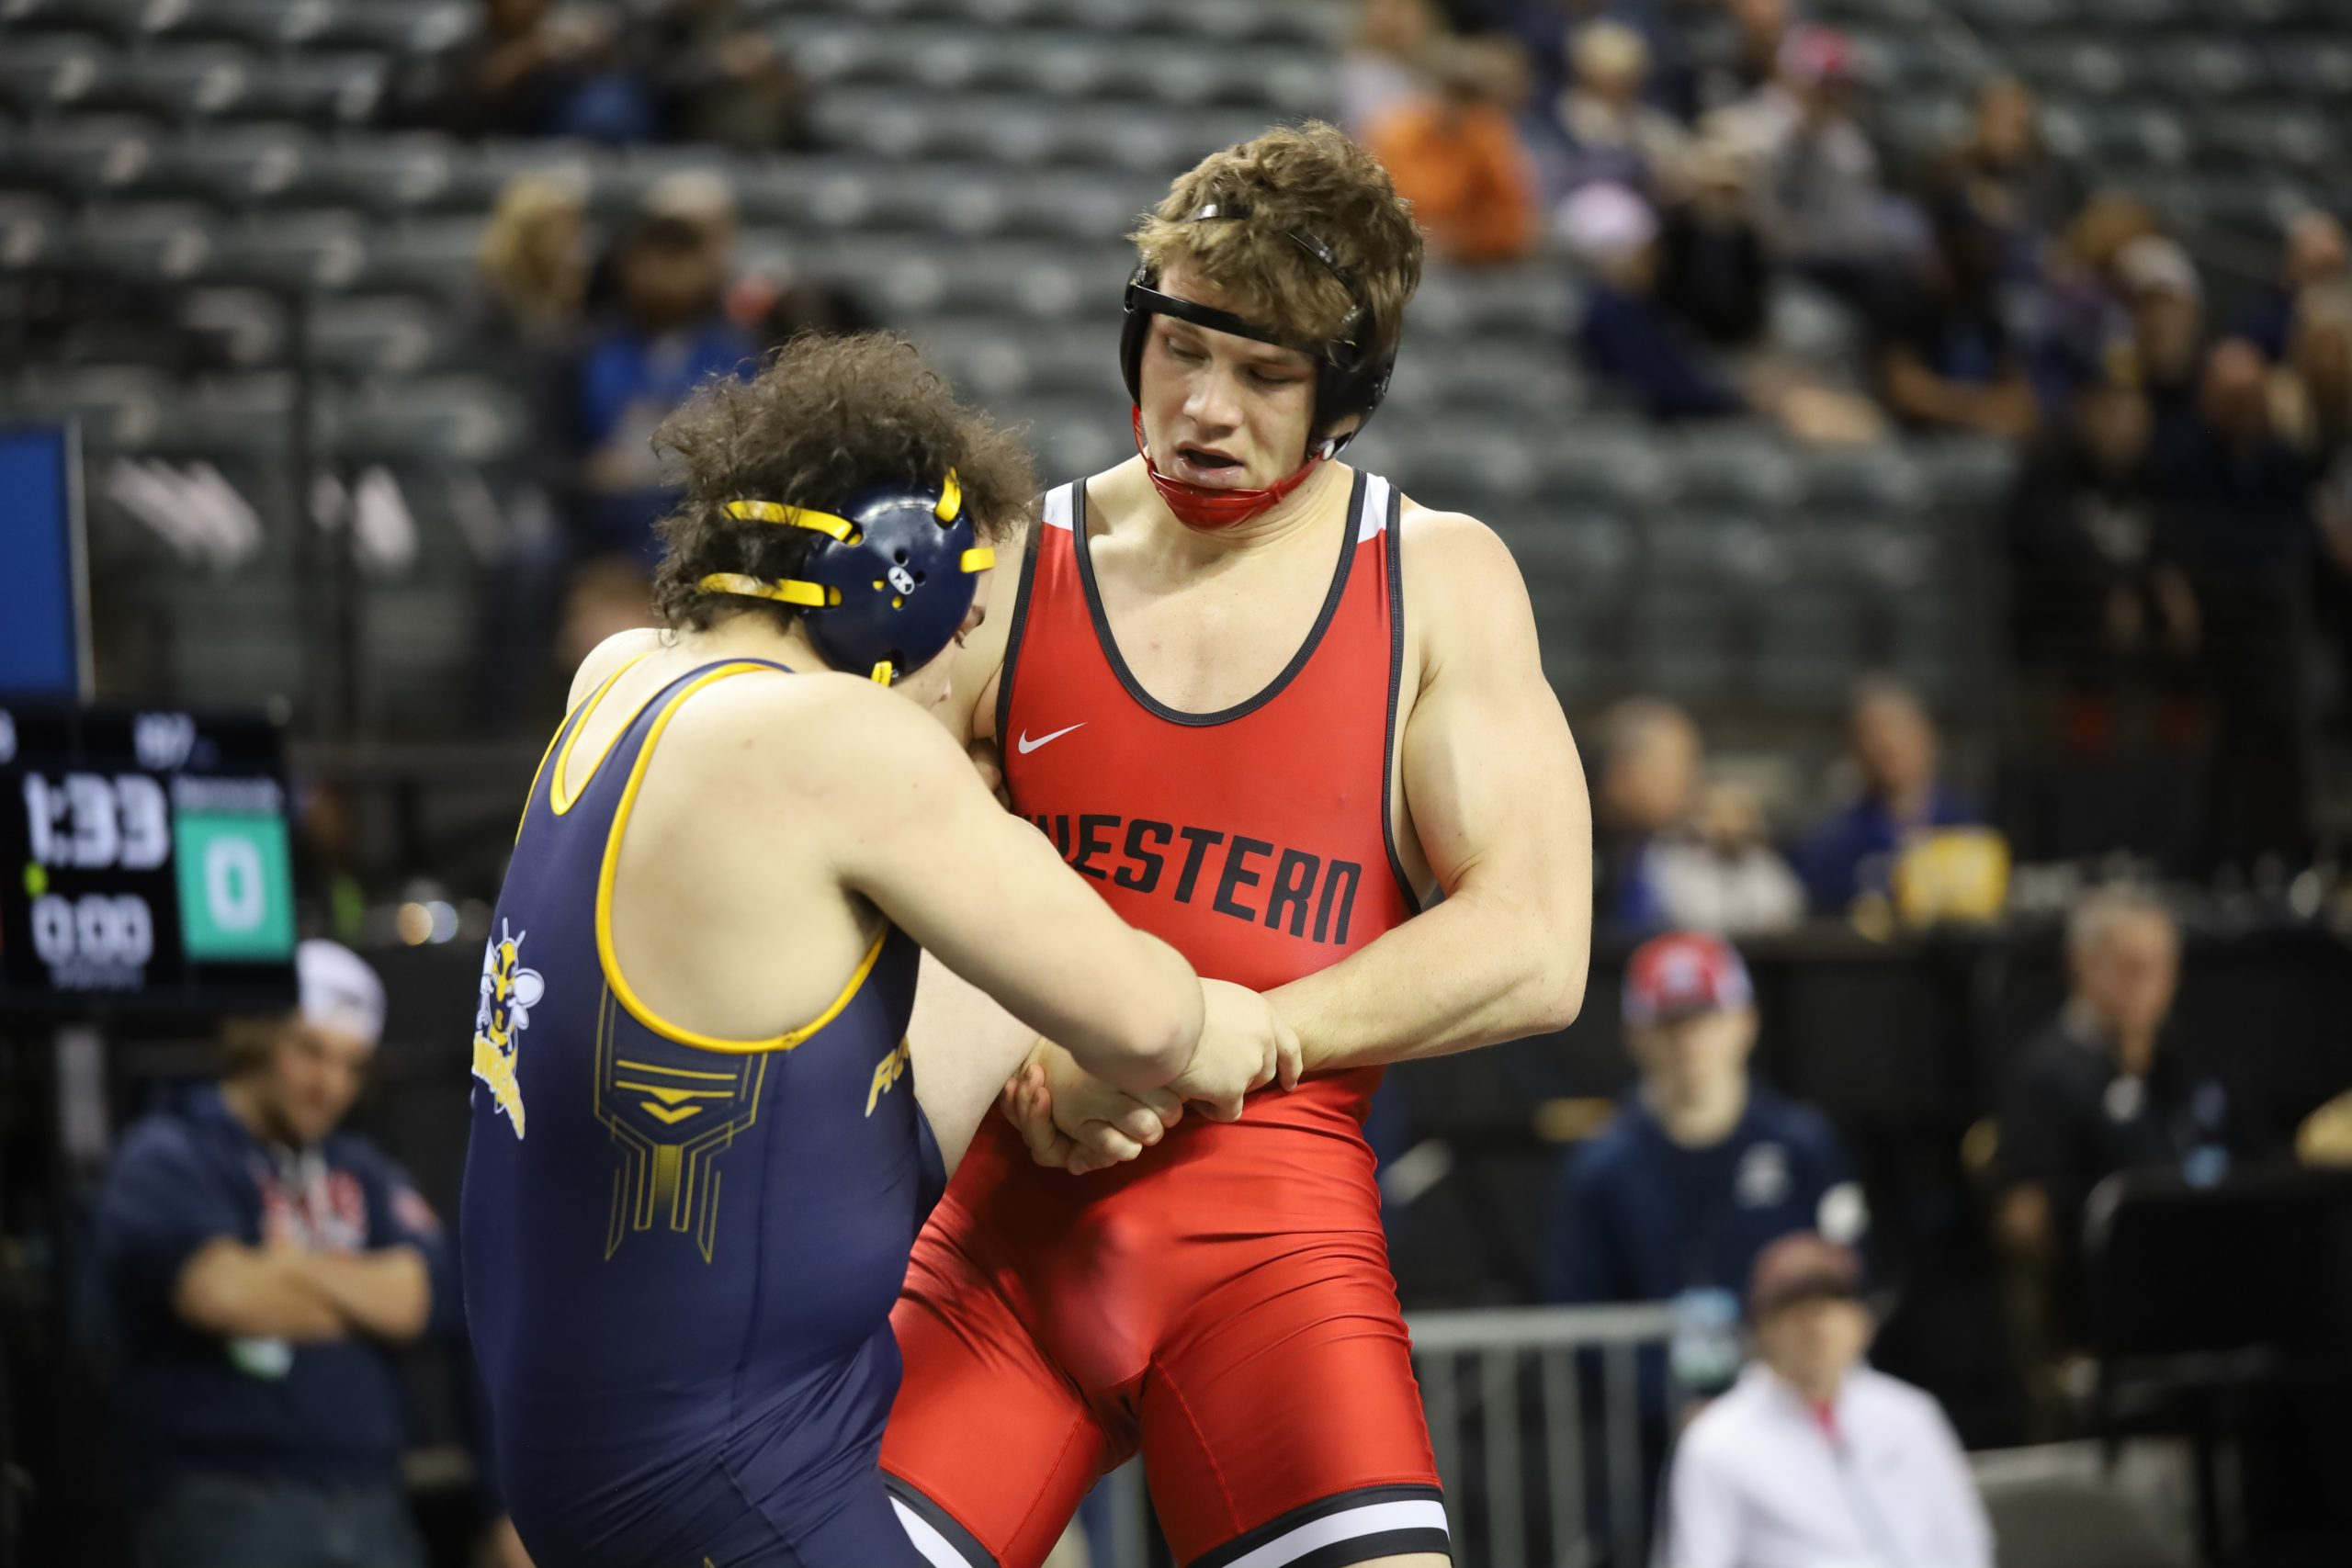 WWCC's Tomlinson Earns Trip to 2020 NJCAA Wrestling Championship Round